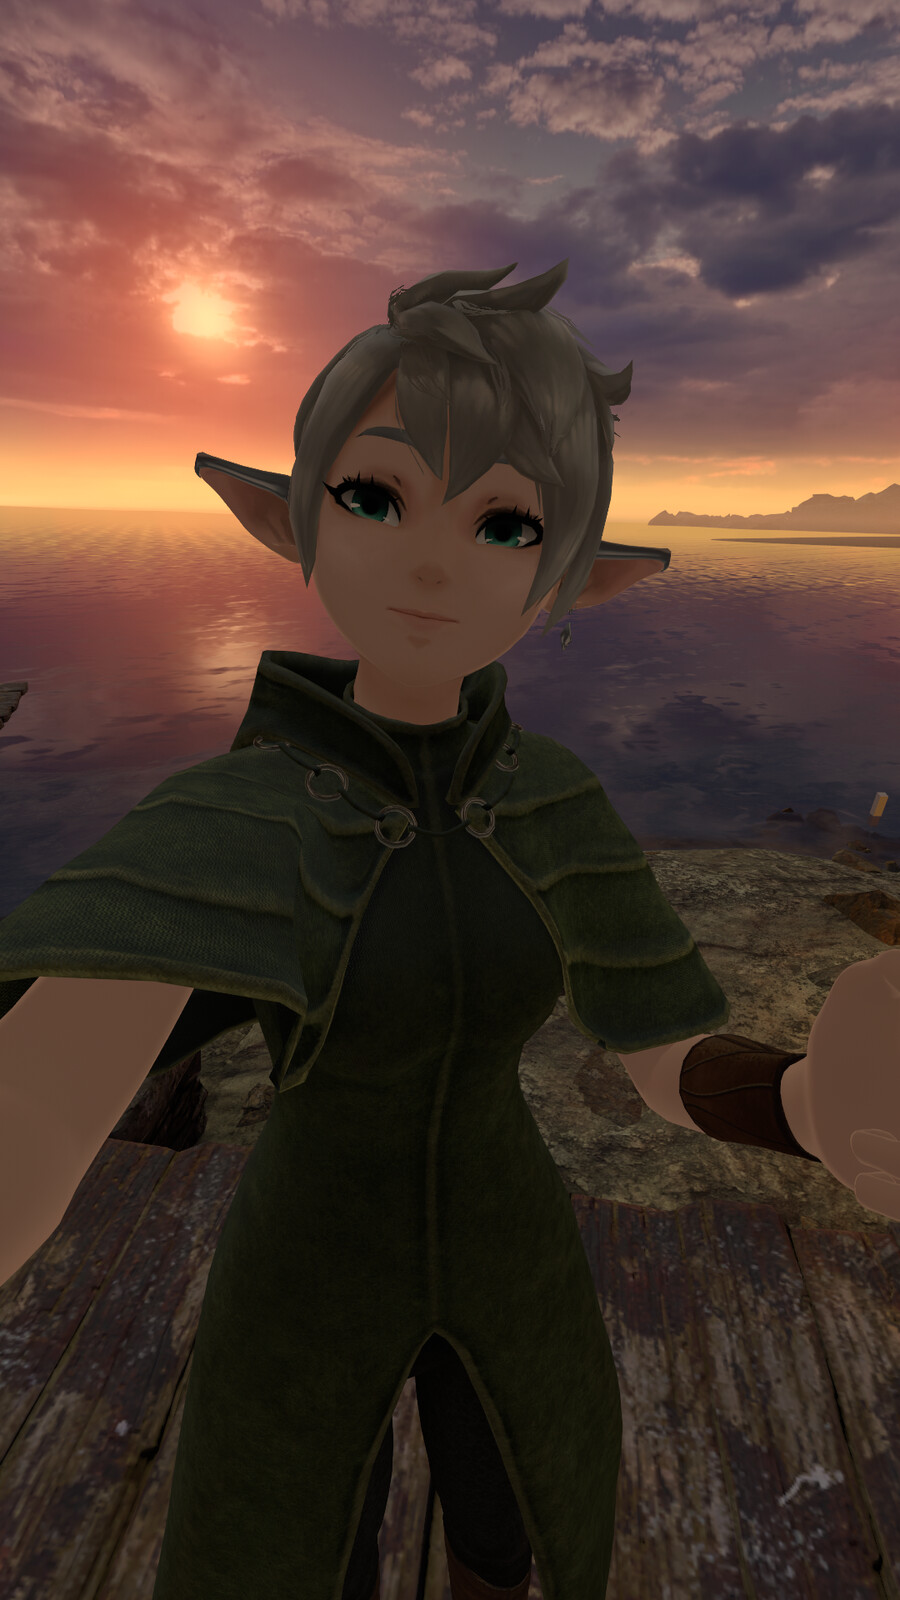 In-game selfie from me taking the avatar for a test drive